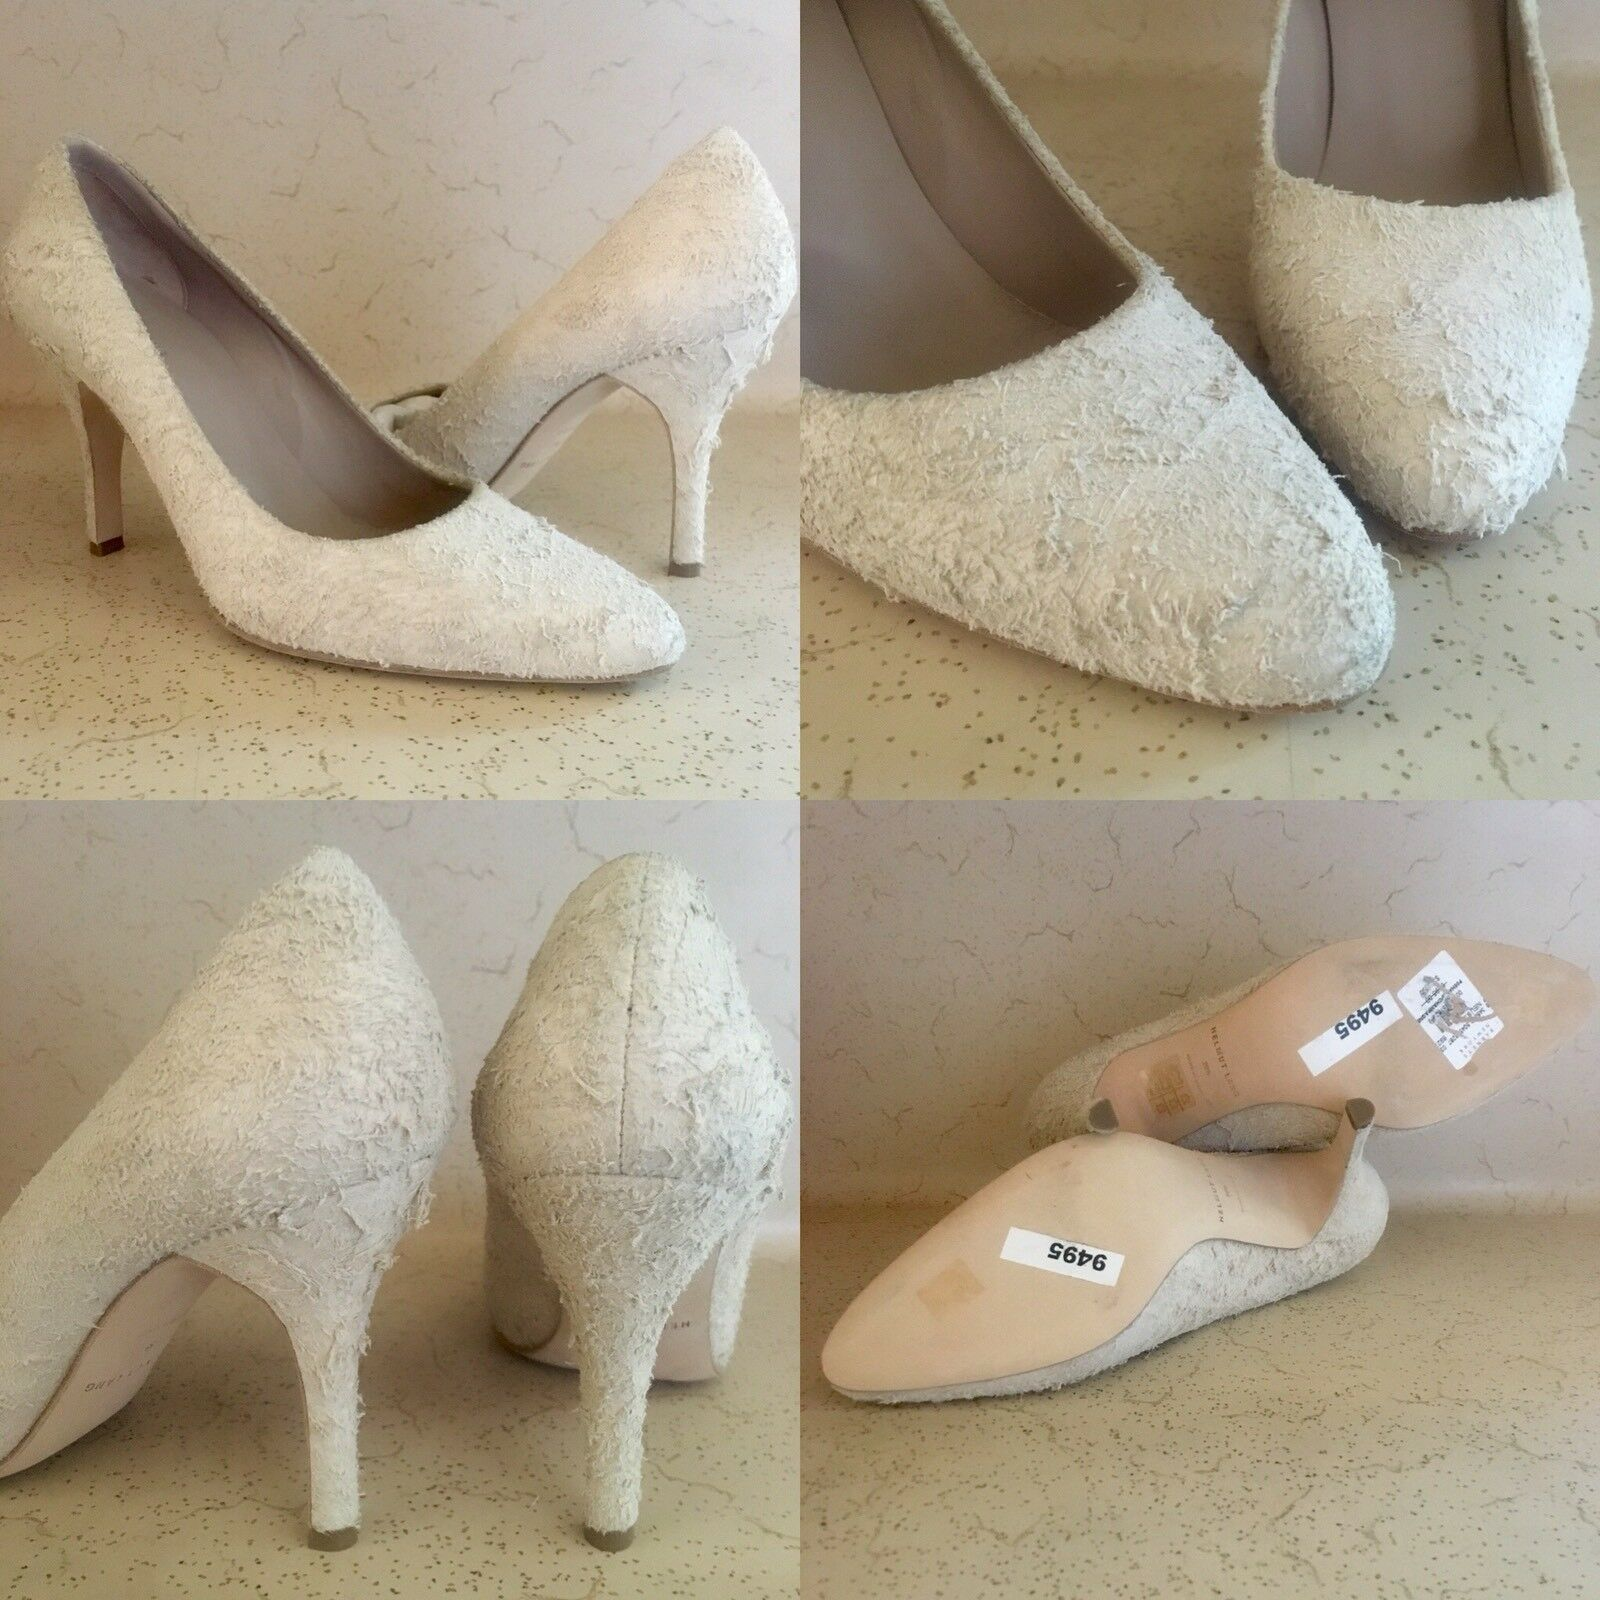 595 NWOB SZ 39.5 IT 9.5 US HELMUT LANG CHAMPAGNE DISTRESSED SUEDE PUMPS HEELS